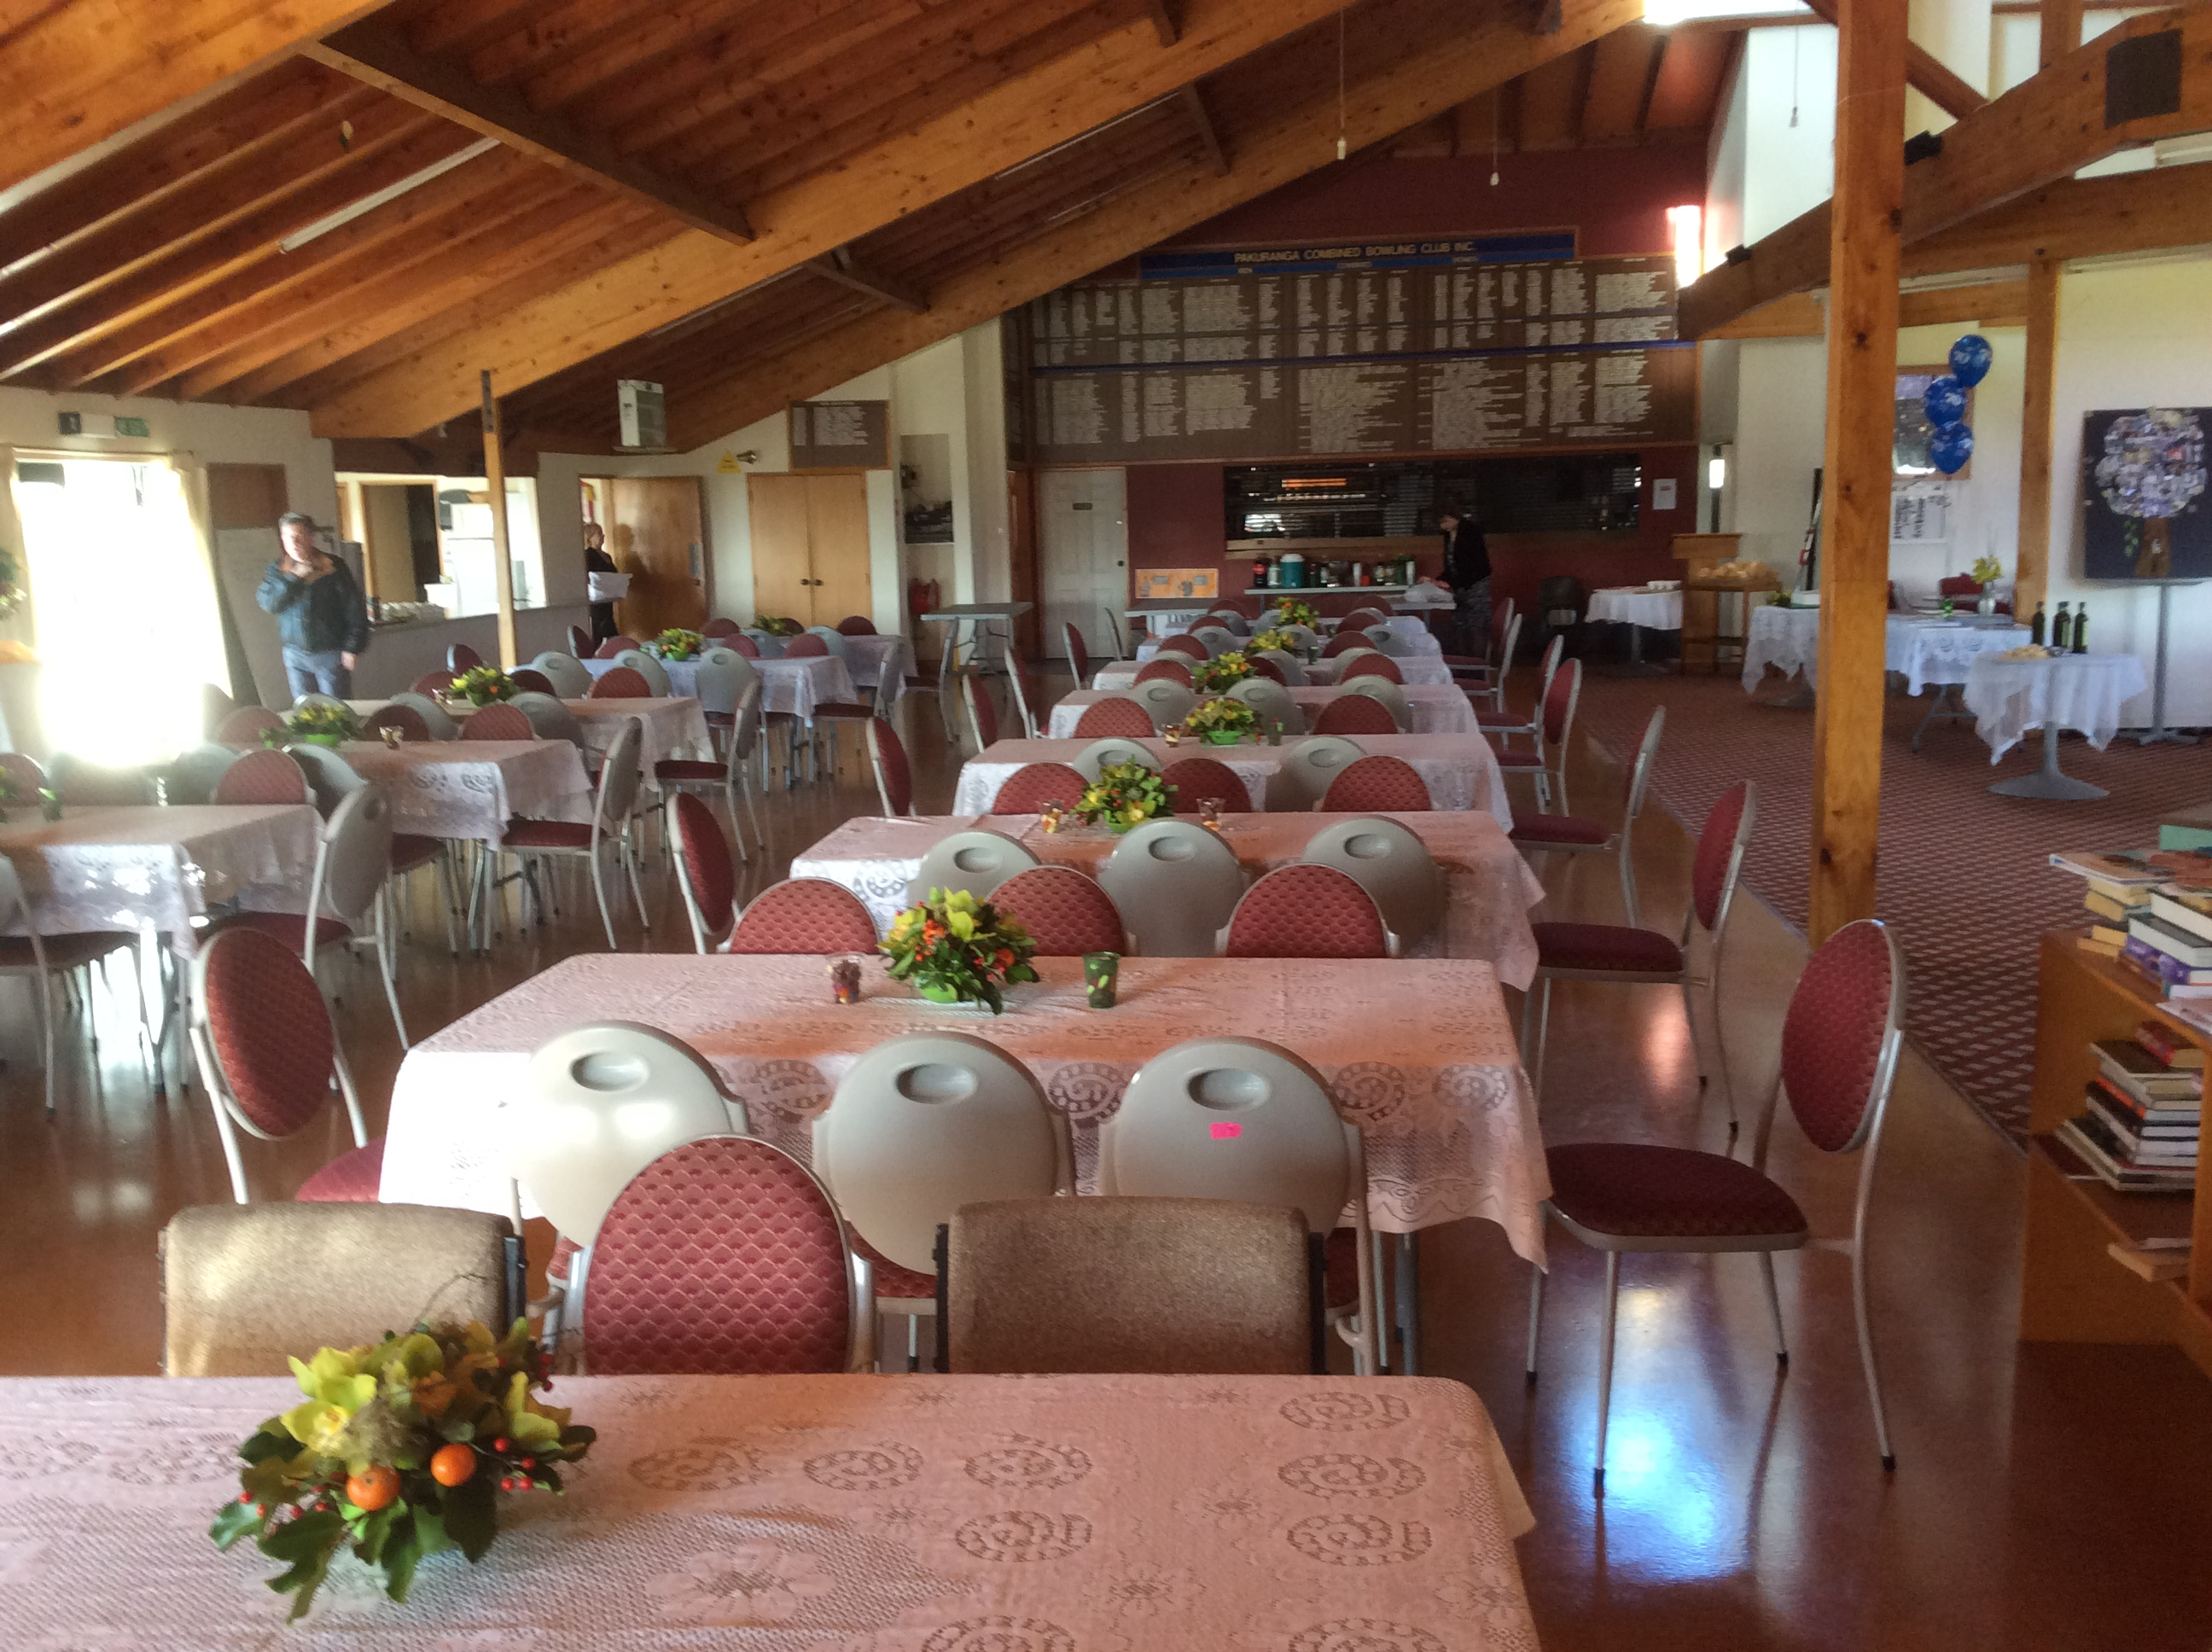 Pakuranga Bowling Club ready for Jennifer's 70th birthday 18.7.15 (2)